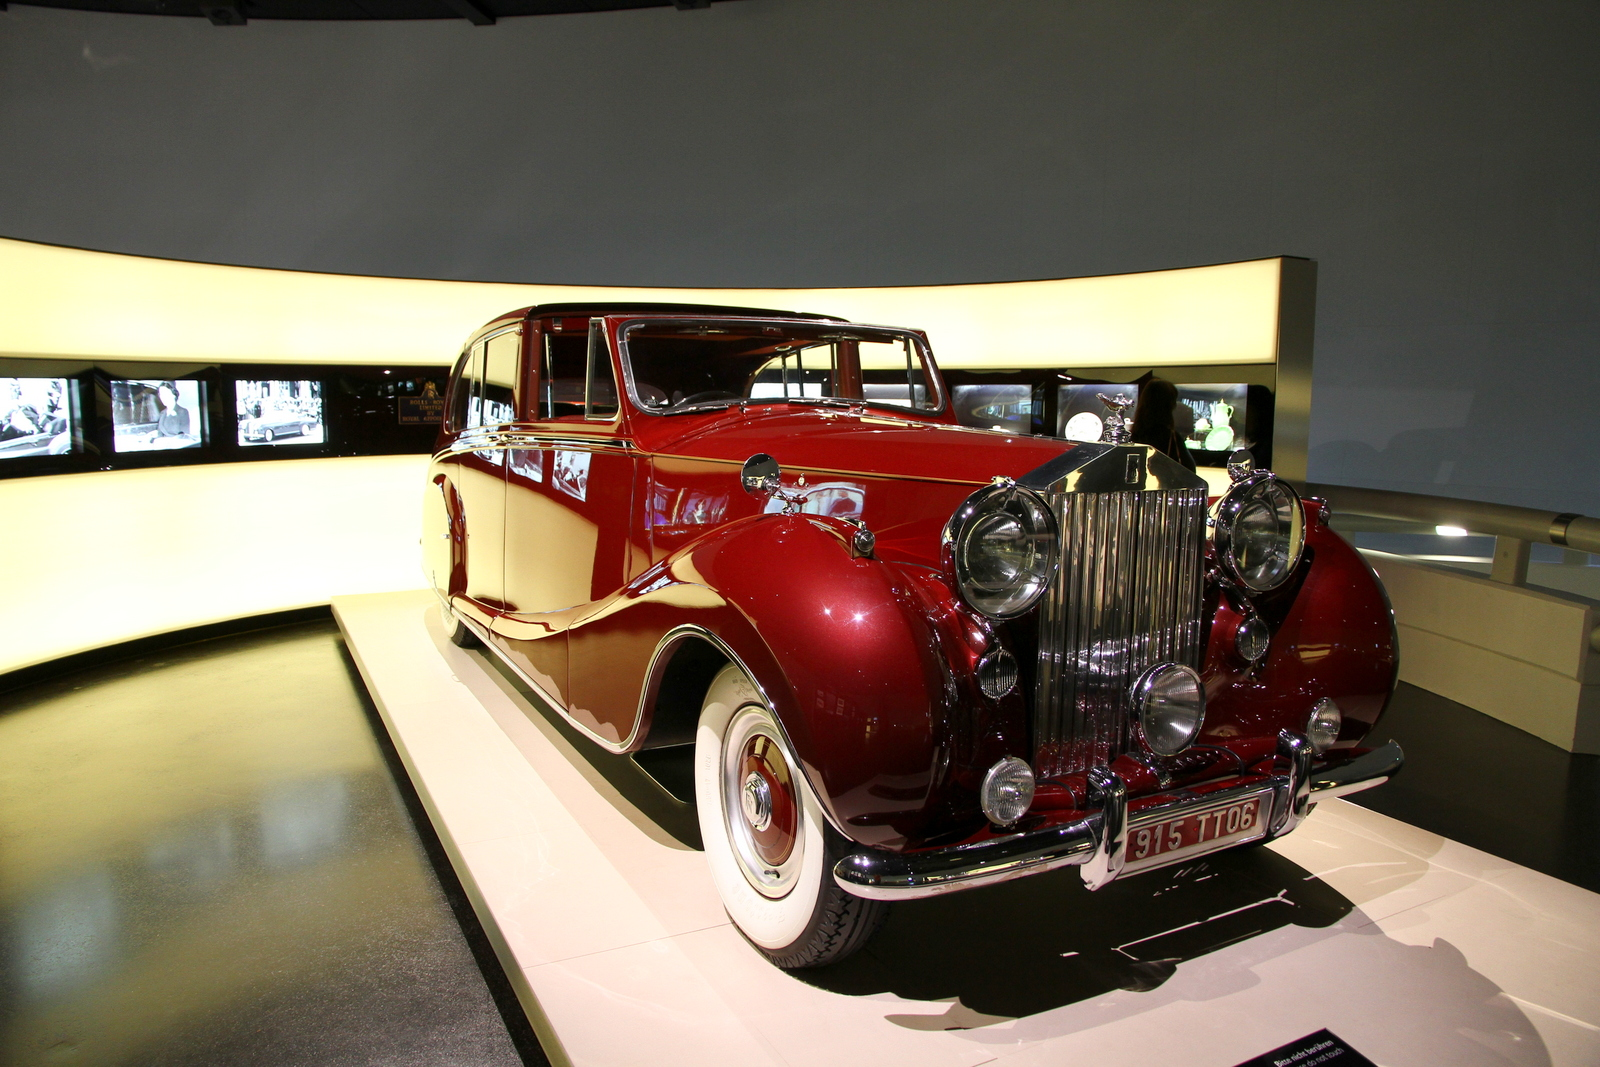 File:Rolls Royce parade car used by British Royal Family.JPG ...